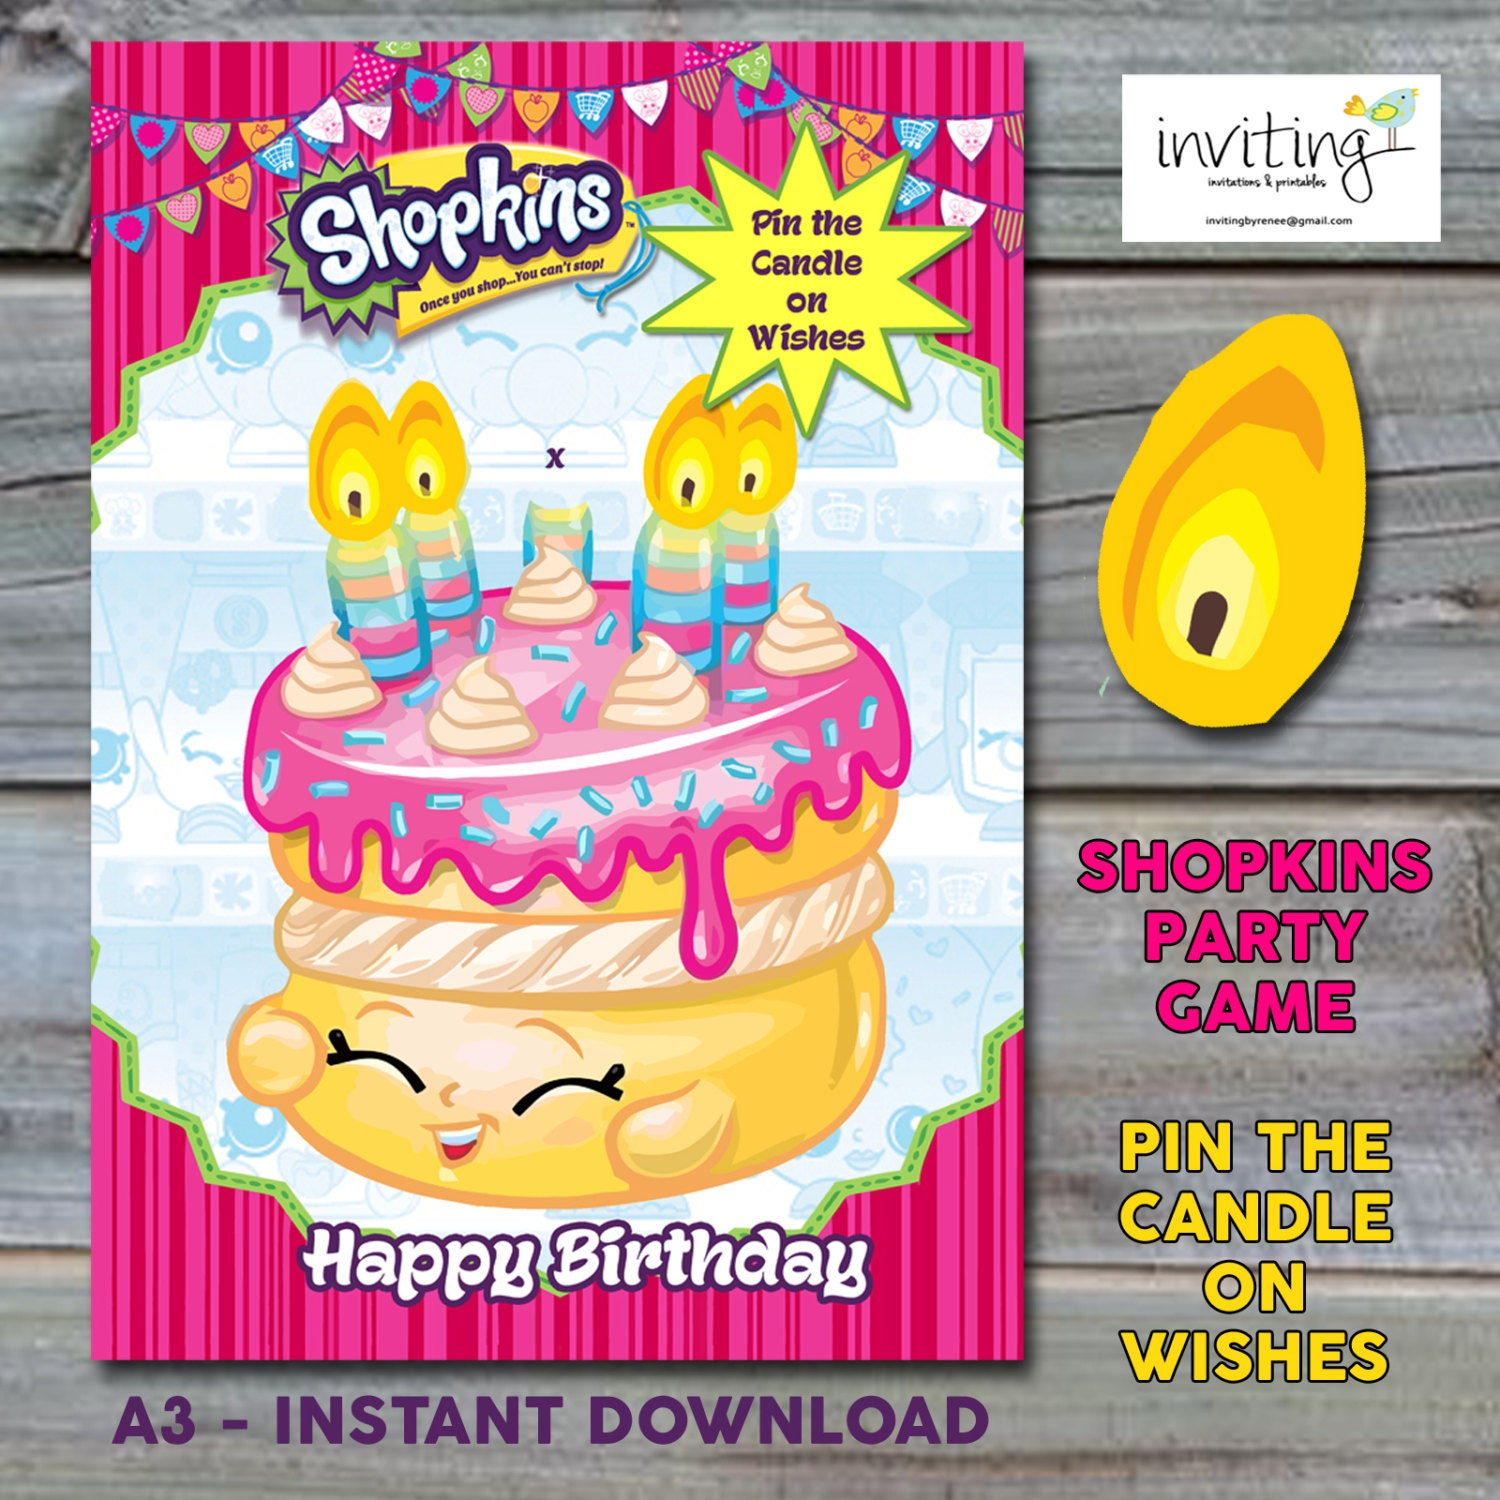 Shopkins Party Game A3 Pin the Candle on Wishes Instant